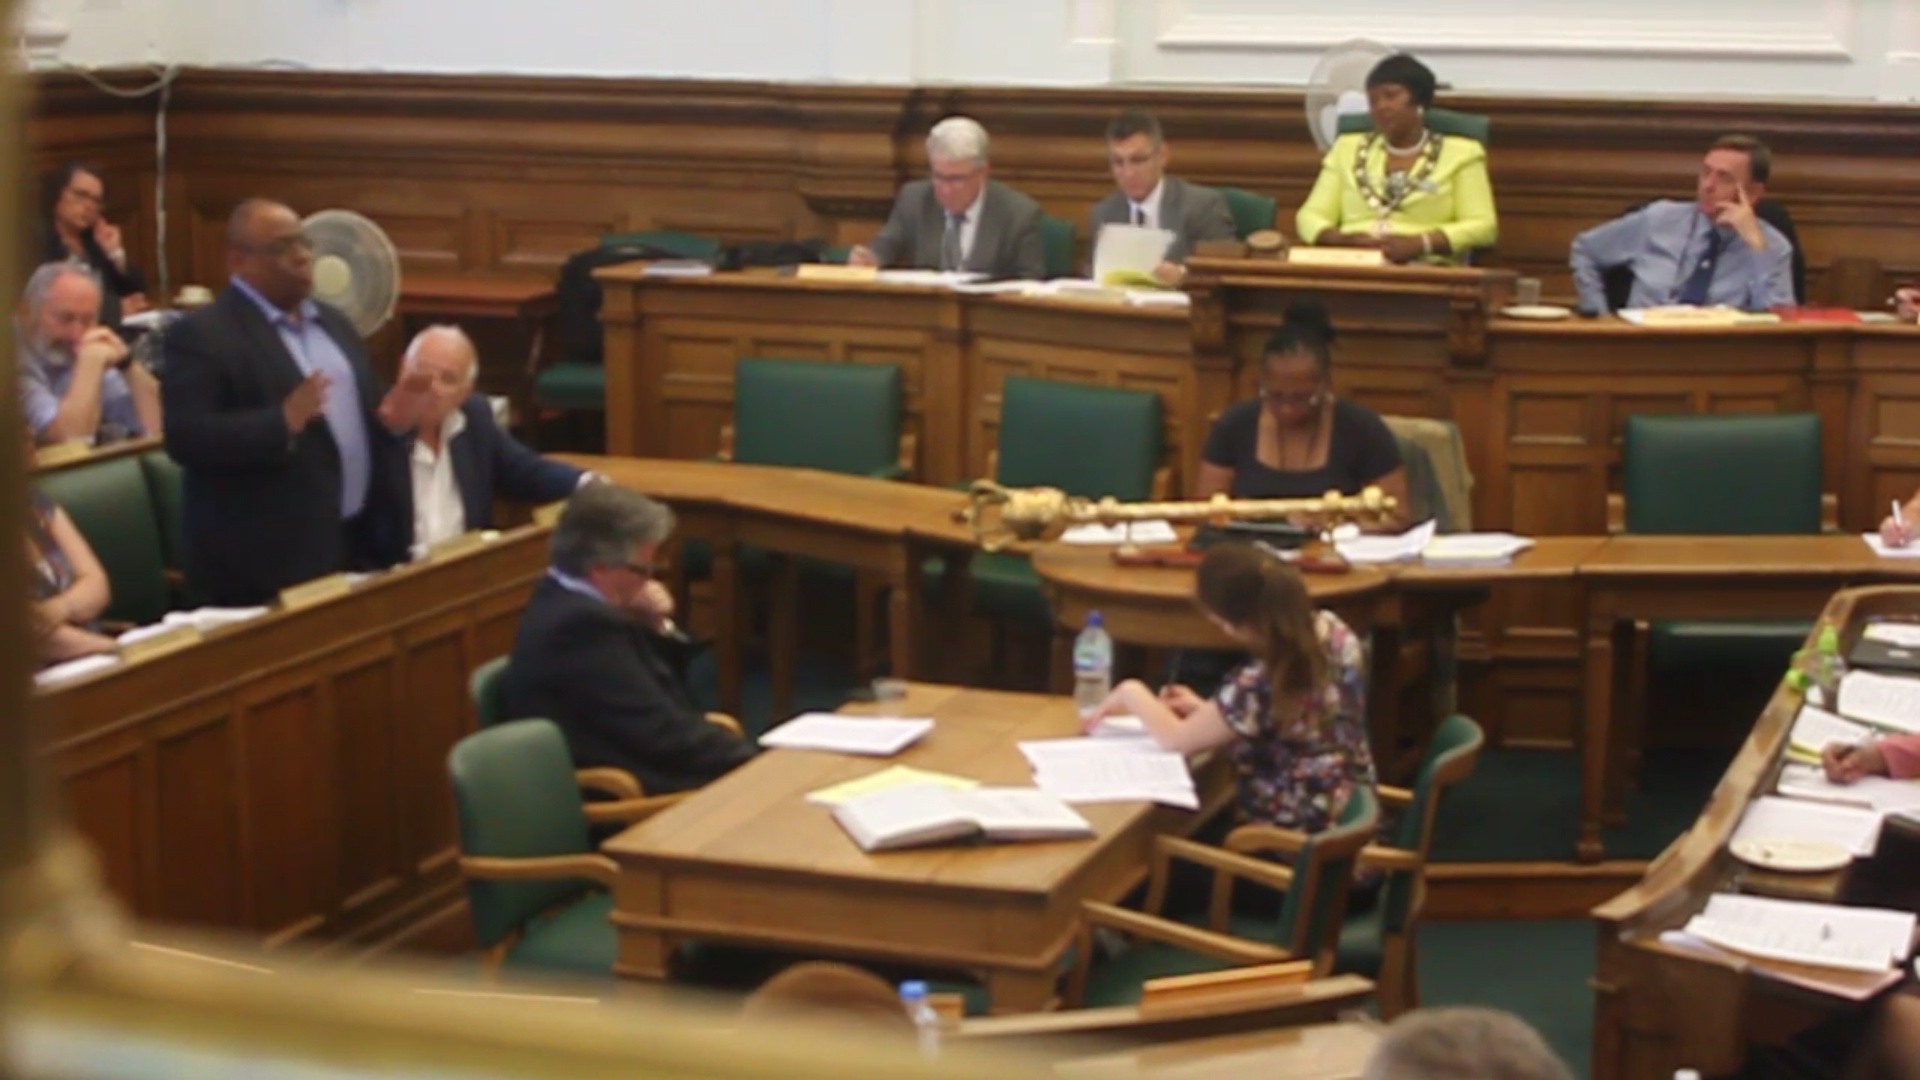 Newham Deputy Mayor answers question on LOBO loans